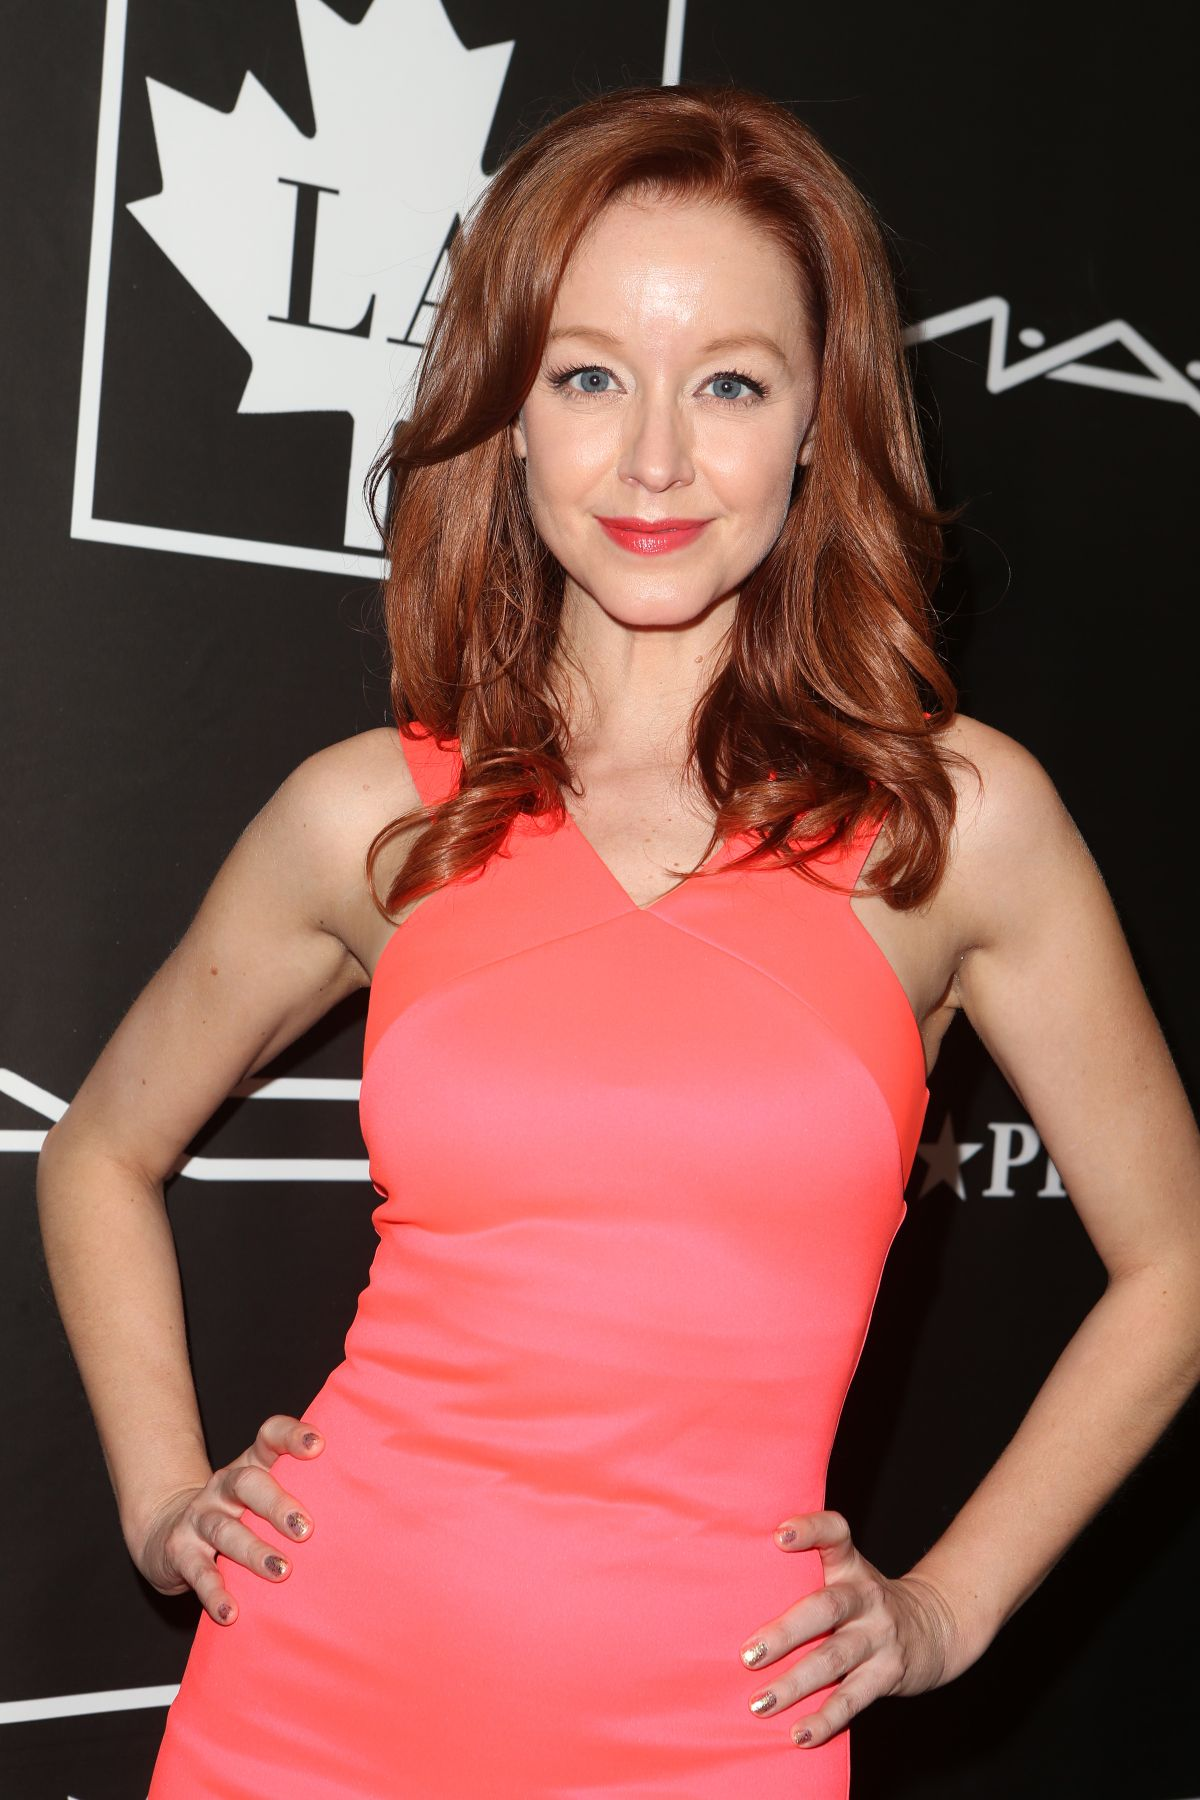 LINDY BOOTH at Golden Maple Awards 2016 in Los Angeles 0/01/2016 - HawtCelebs